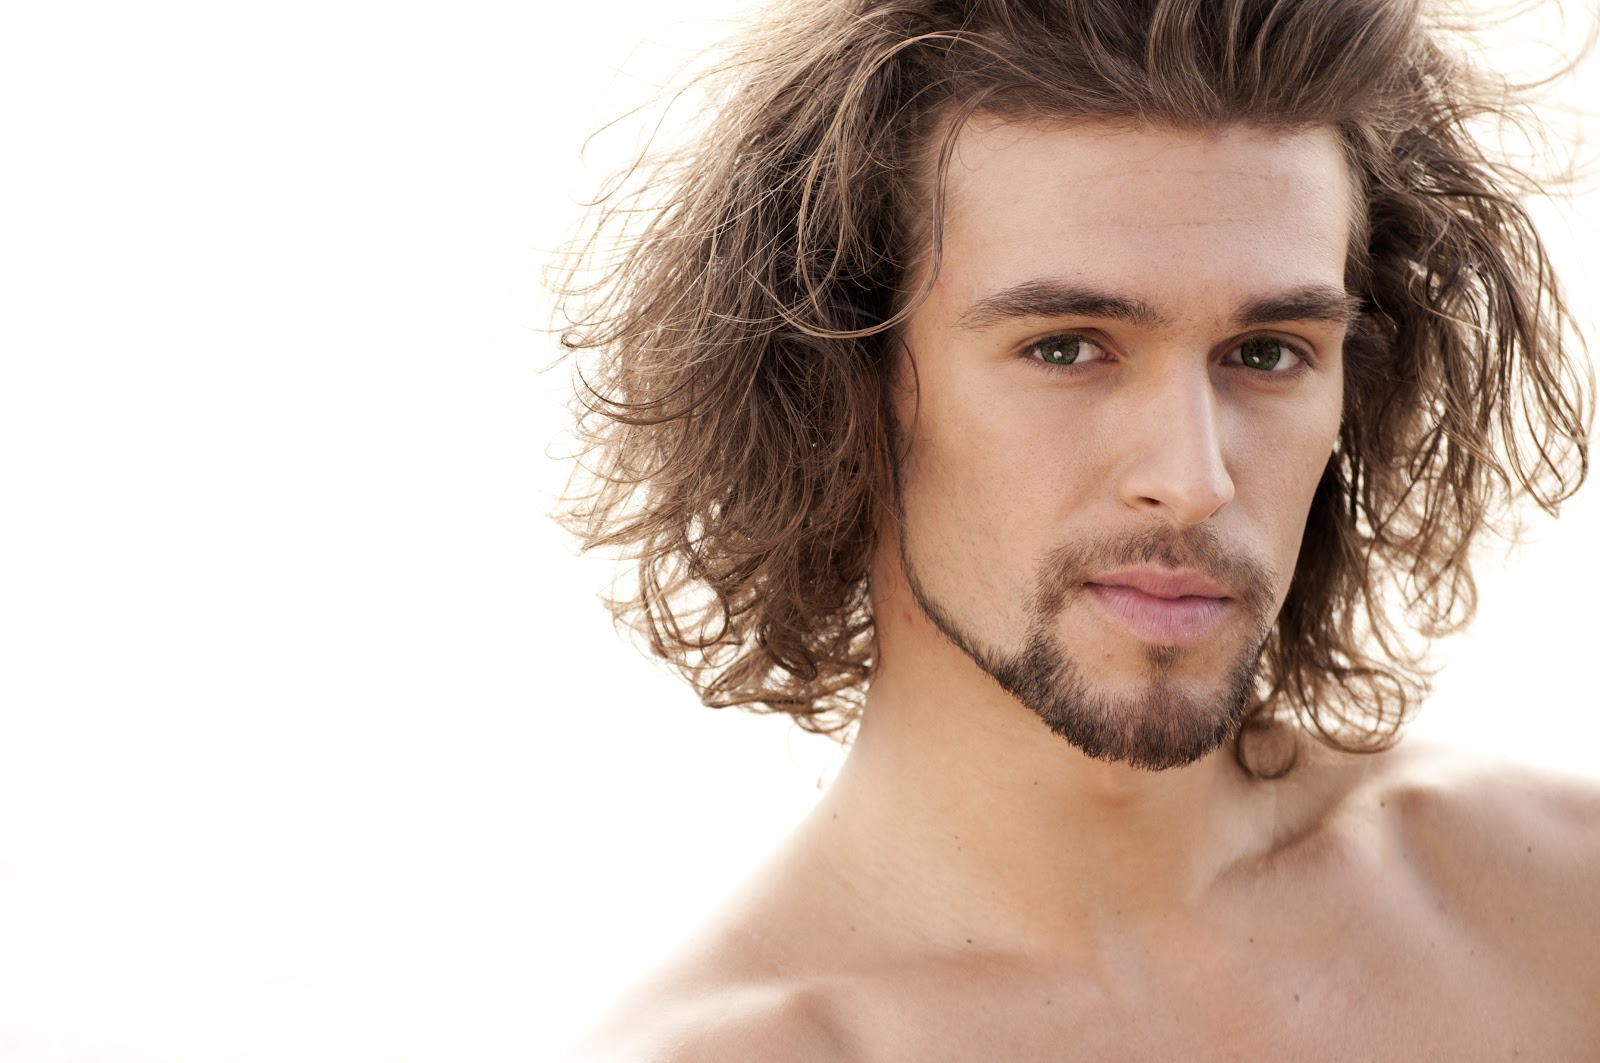 Coolest Medium Hairstyle for Men That Won't Make You Look Messy